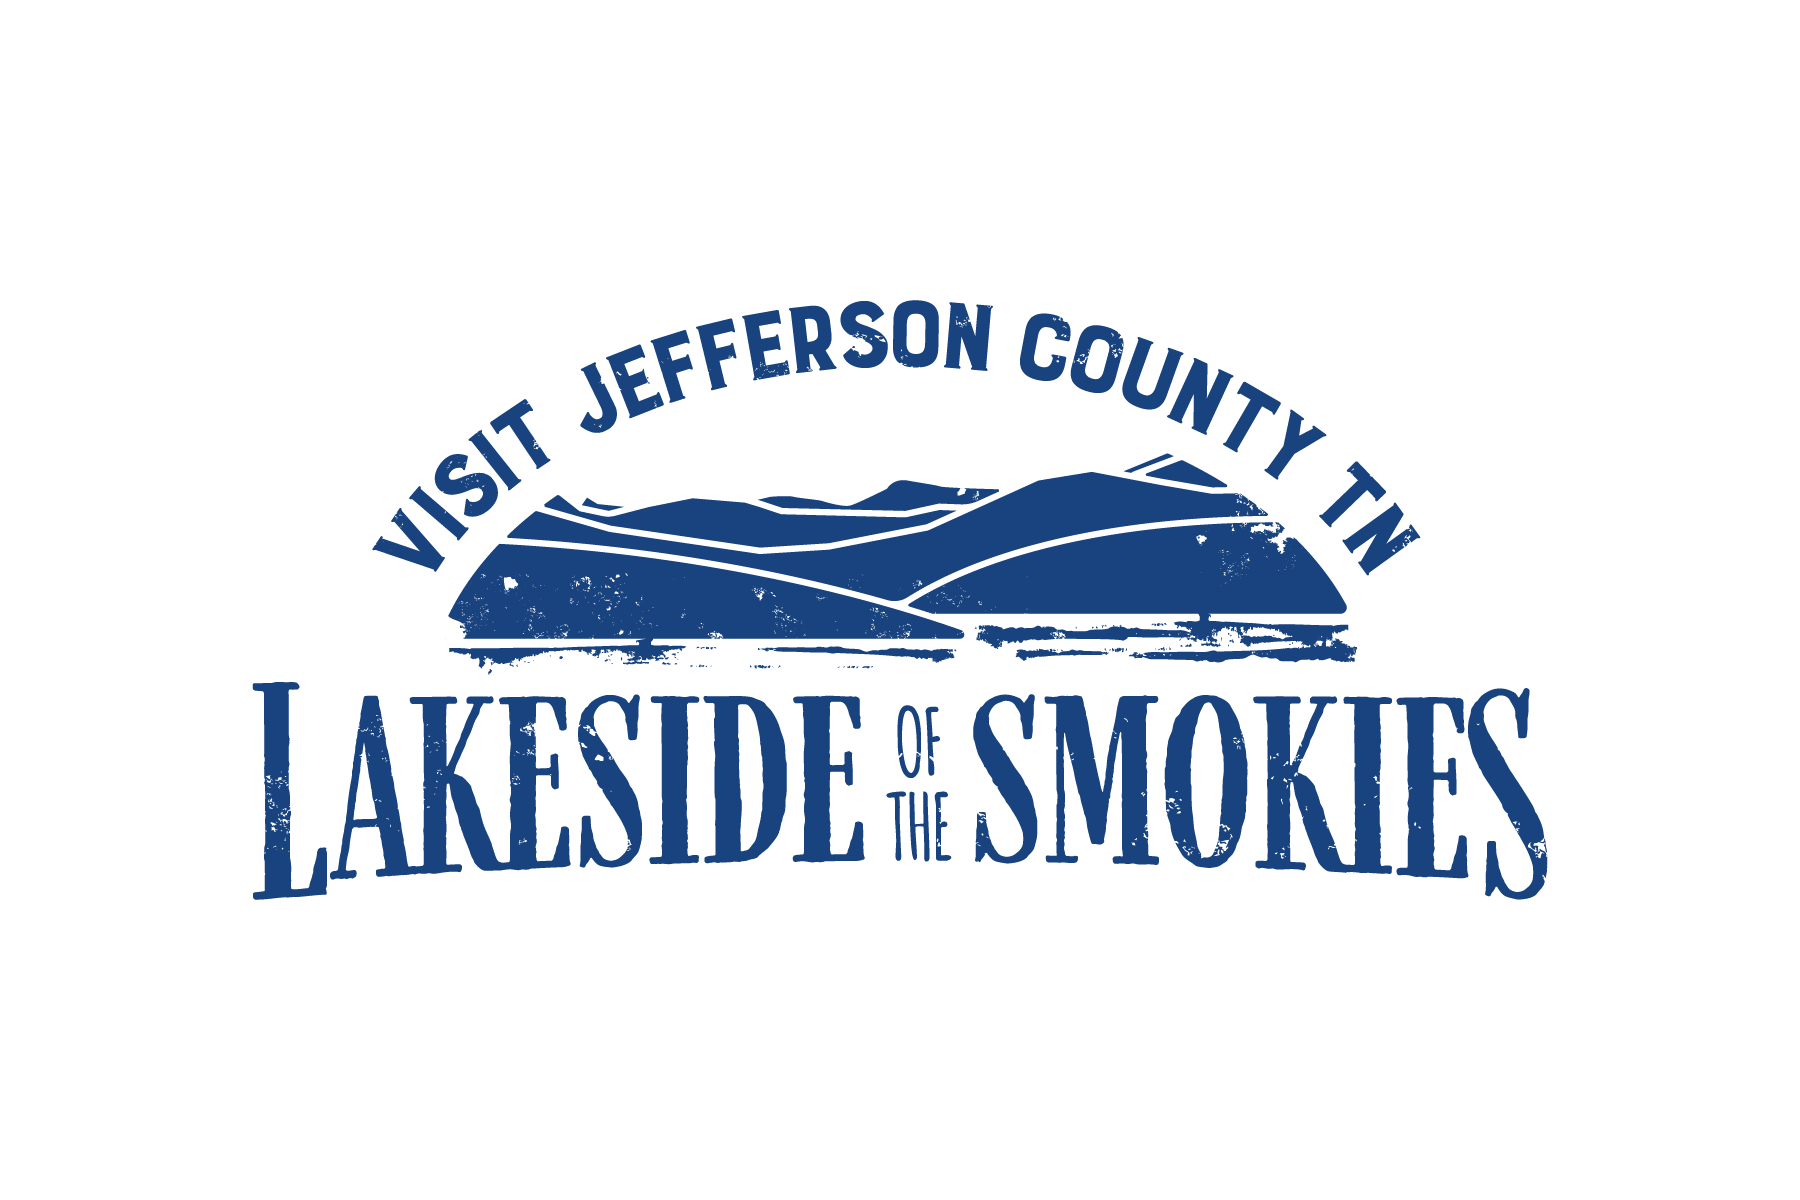 Visit Jefferson County Tennessee